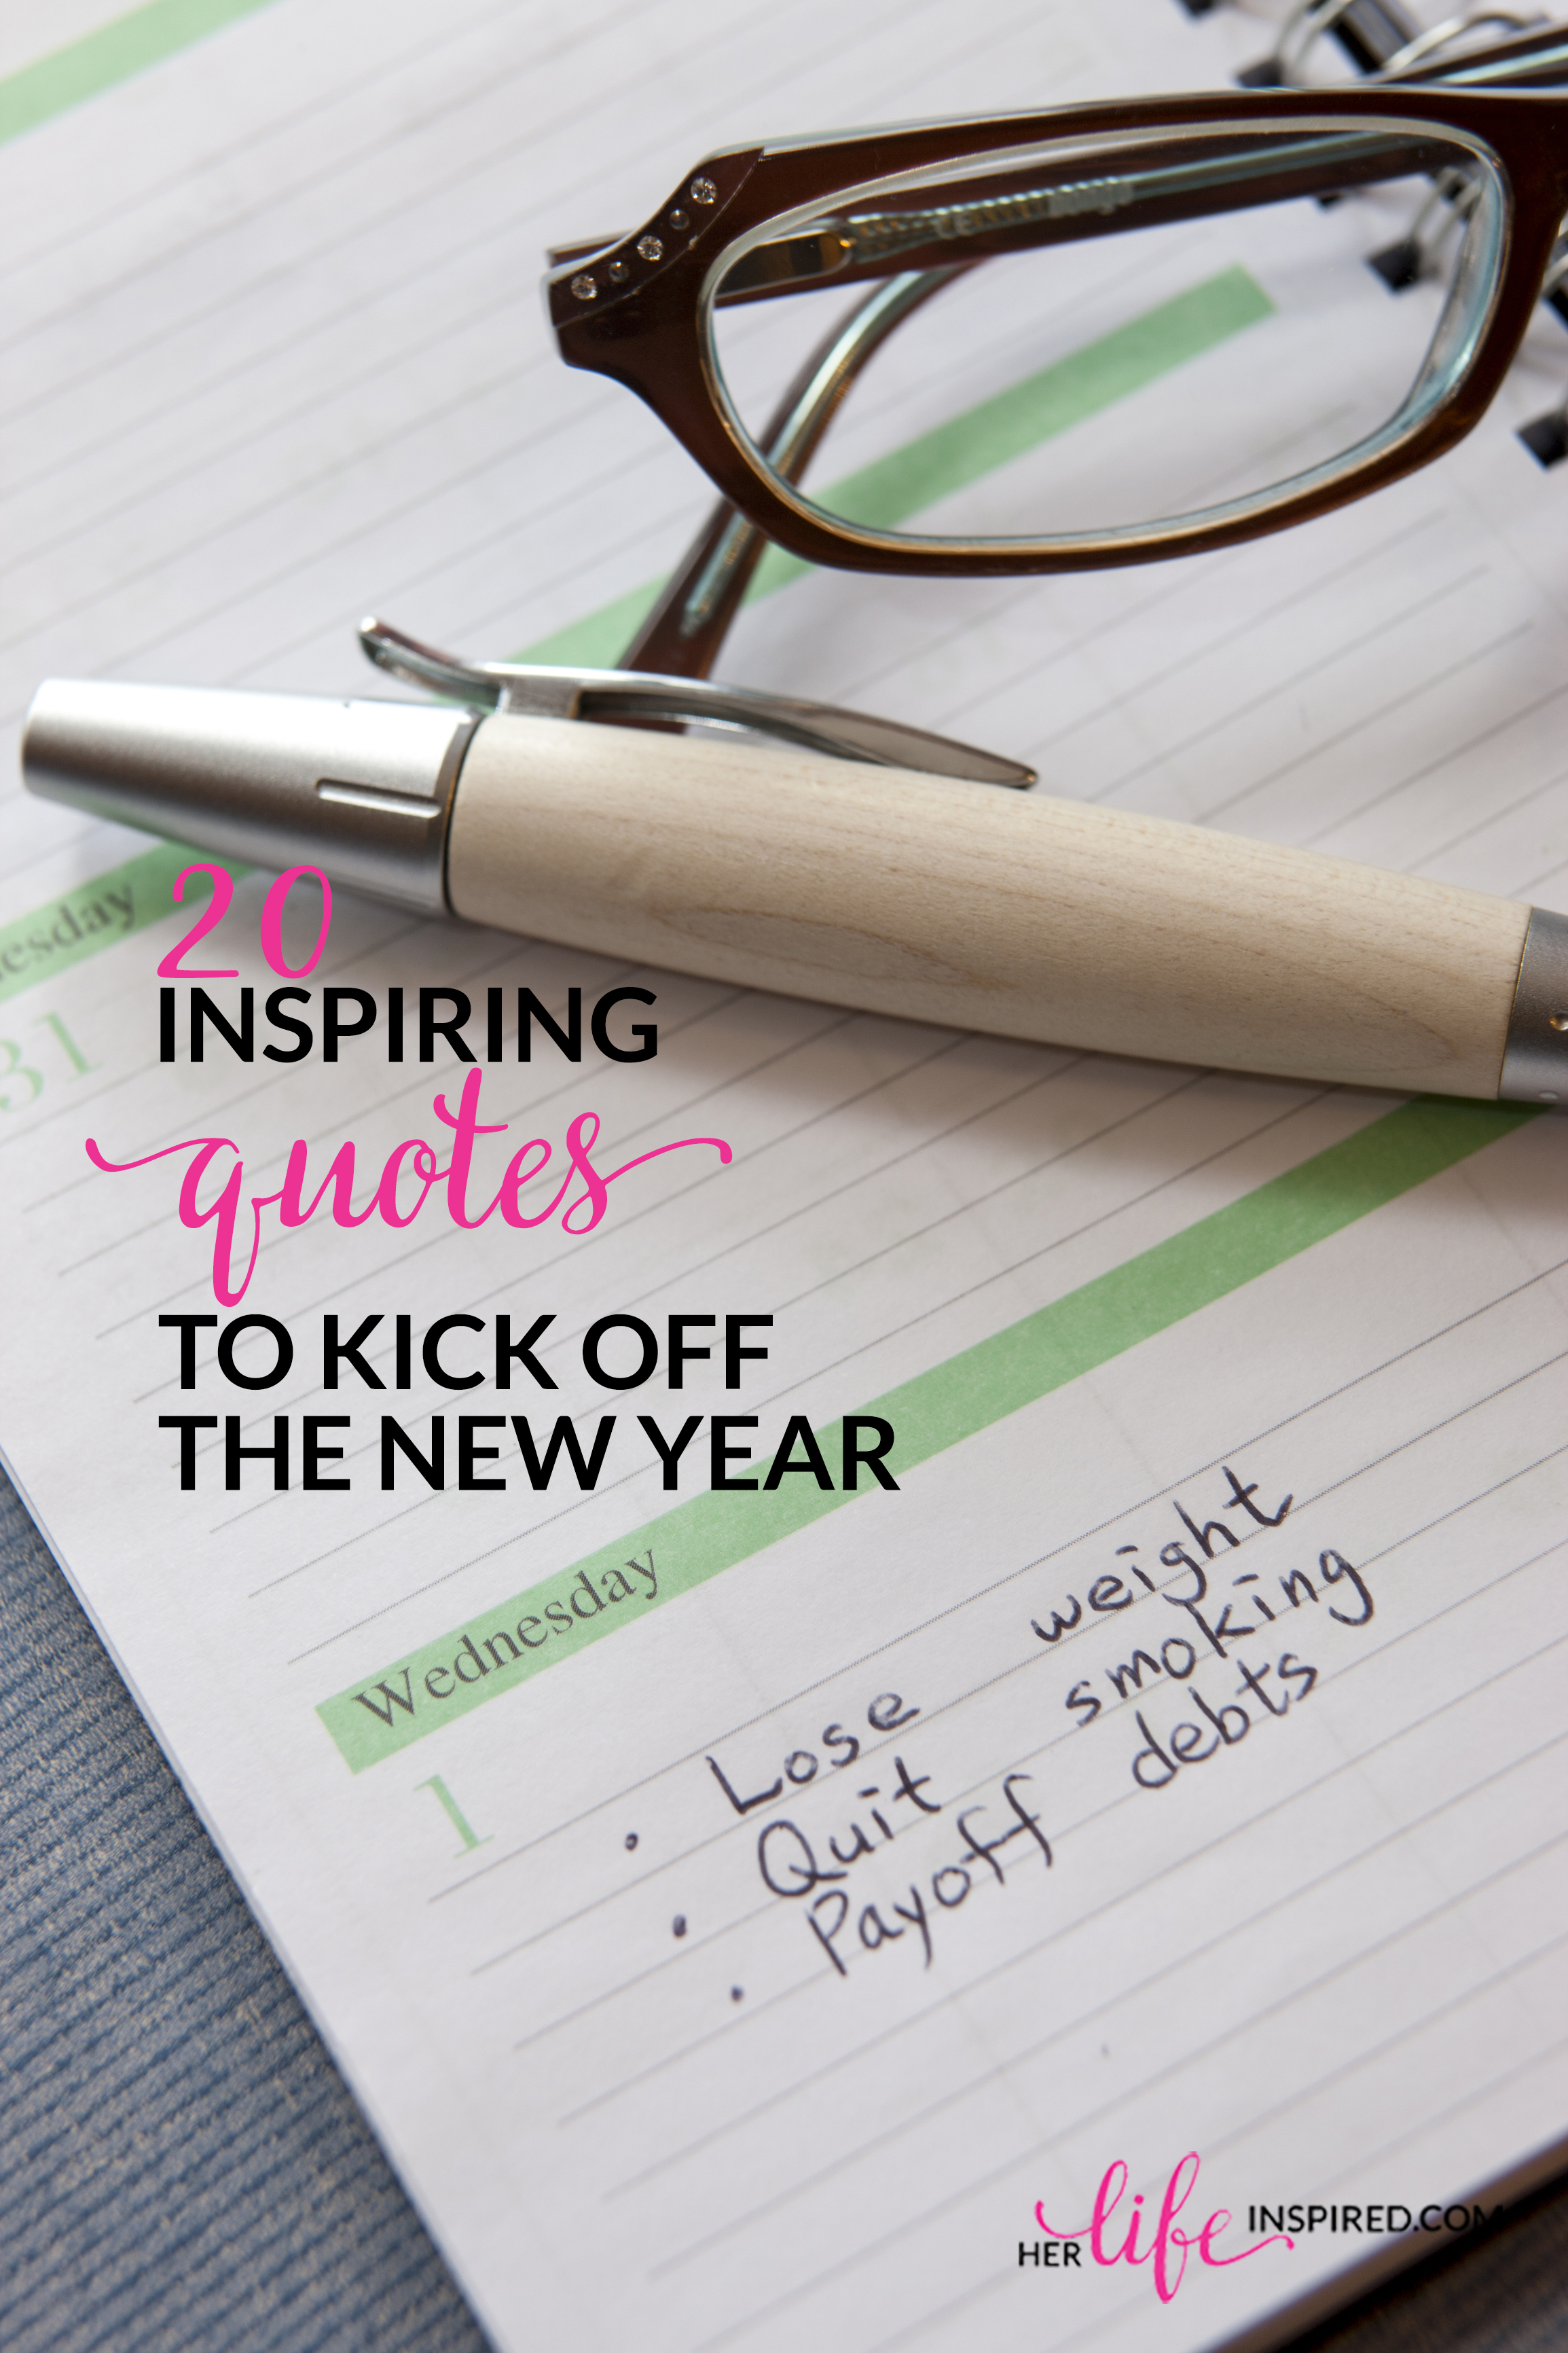 20 Inspiring Quotes To Kick Off The New Year – Her Life Inspired